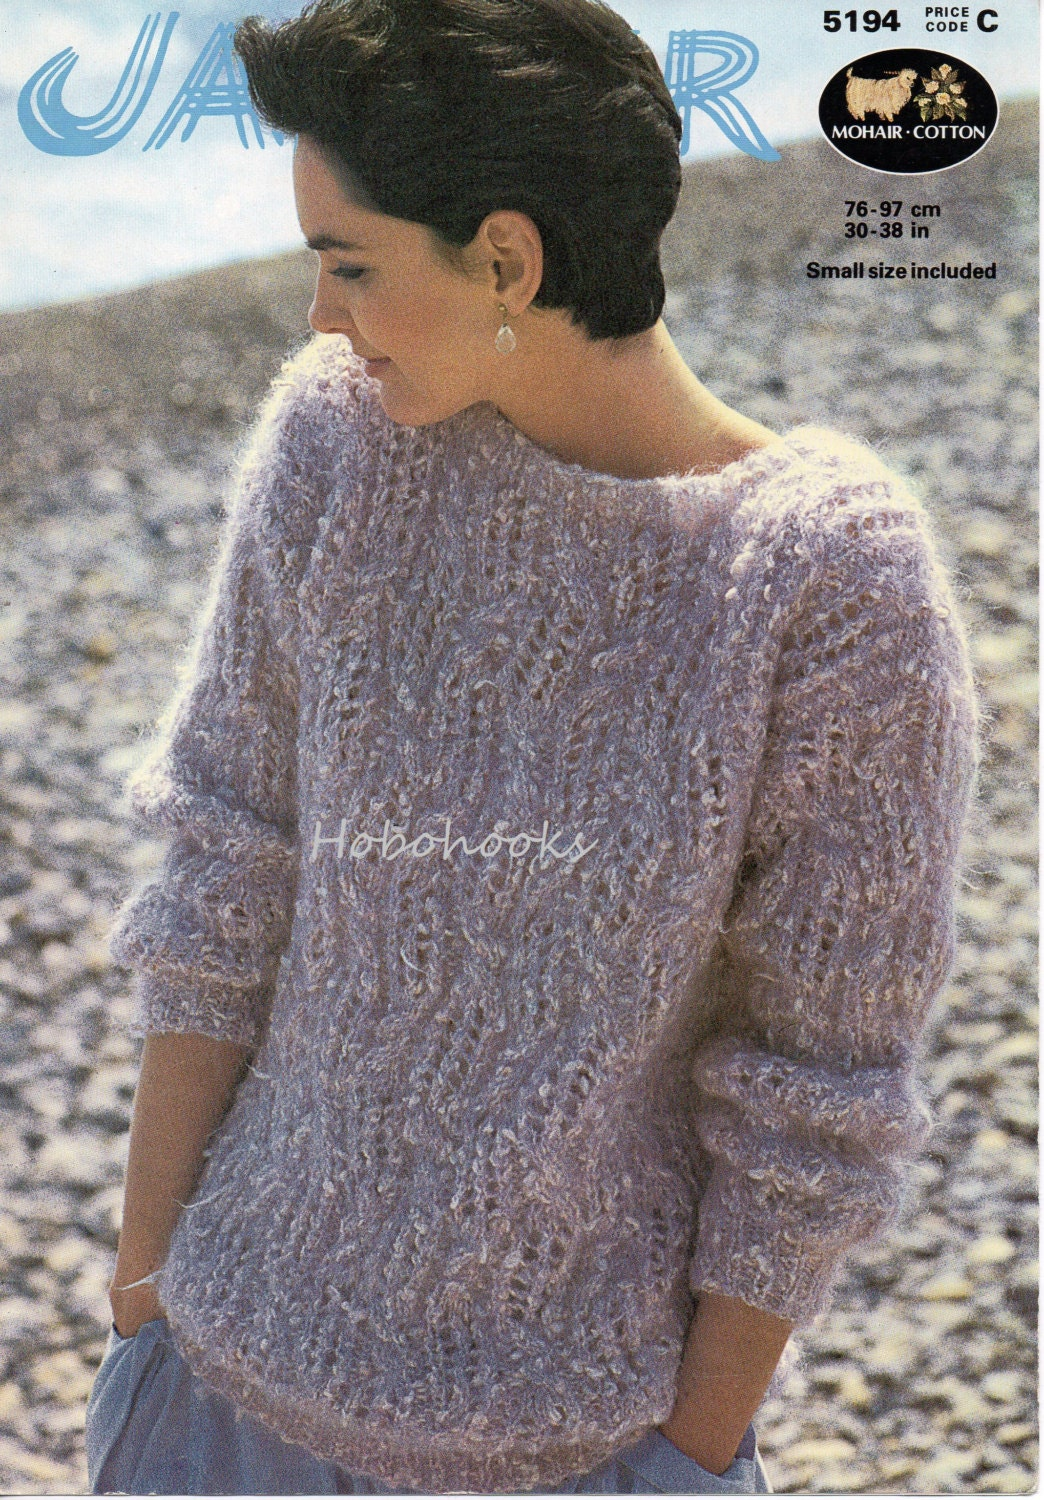 Funky Mohair Wool Knitting Patterns Image - Sewing Pattern for ...